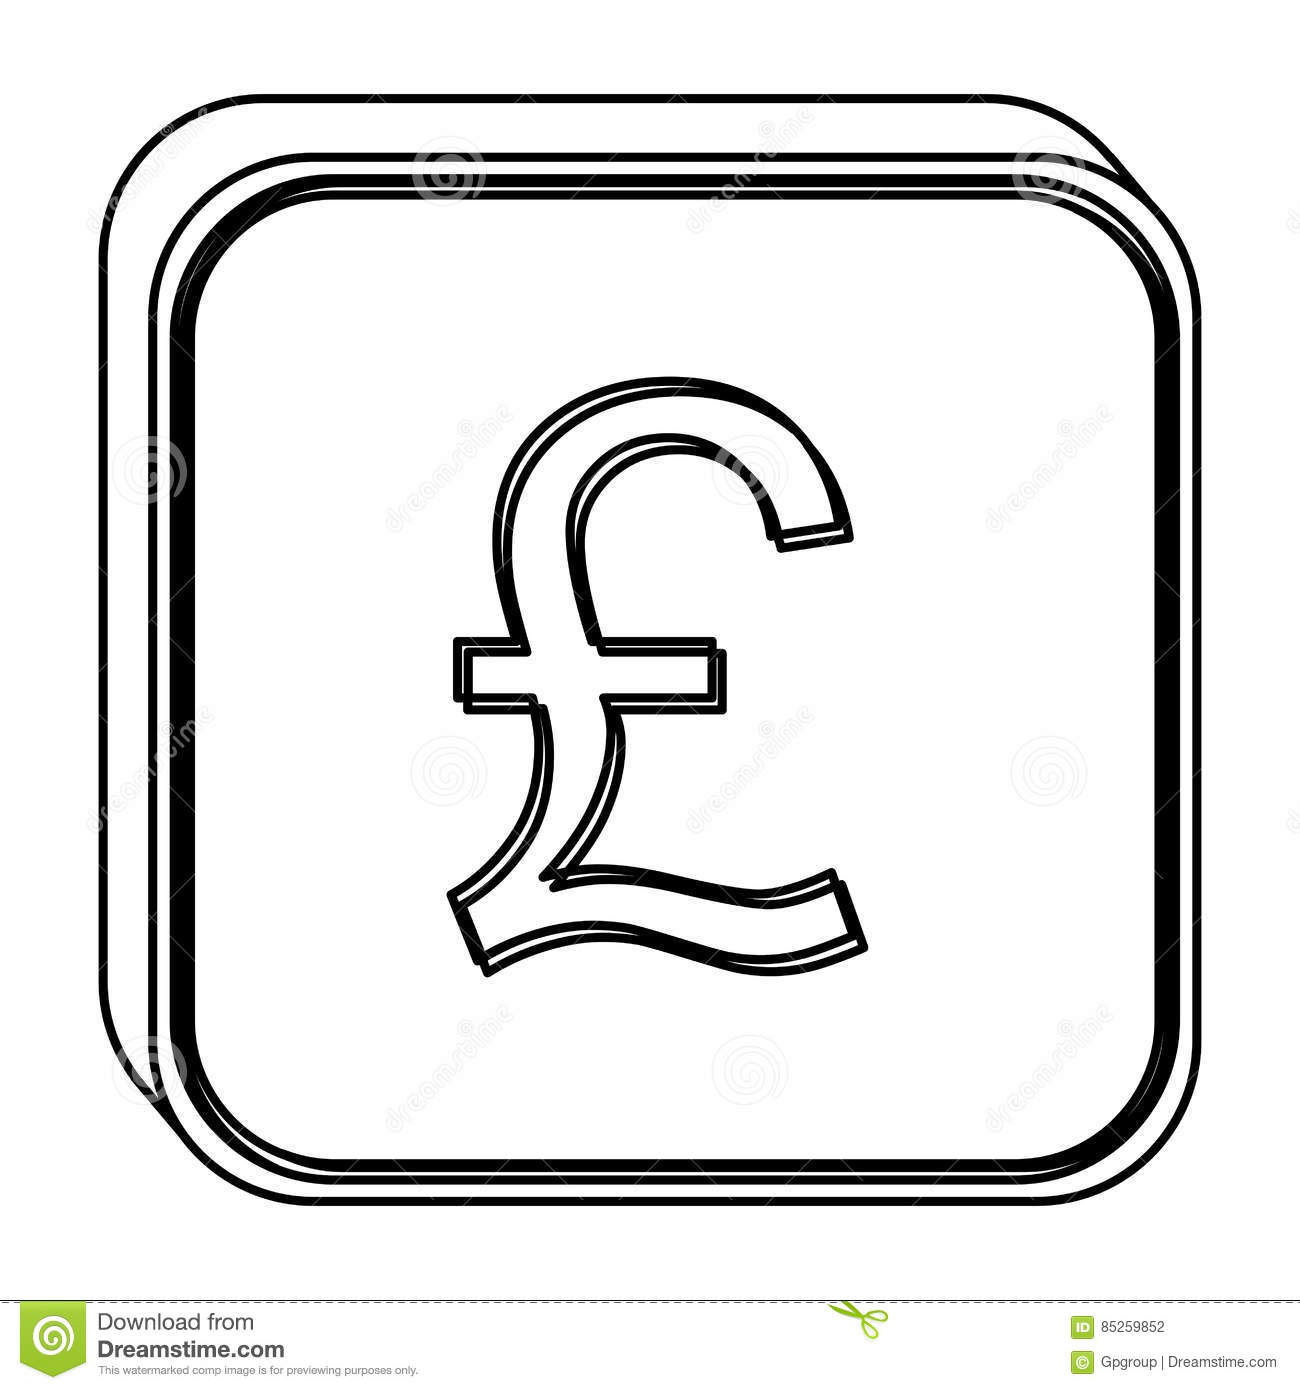 Monochrome Square Contour With Currency Symbol Of Sterling Pound